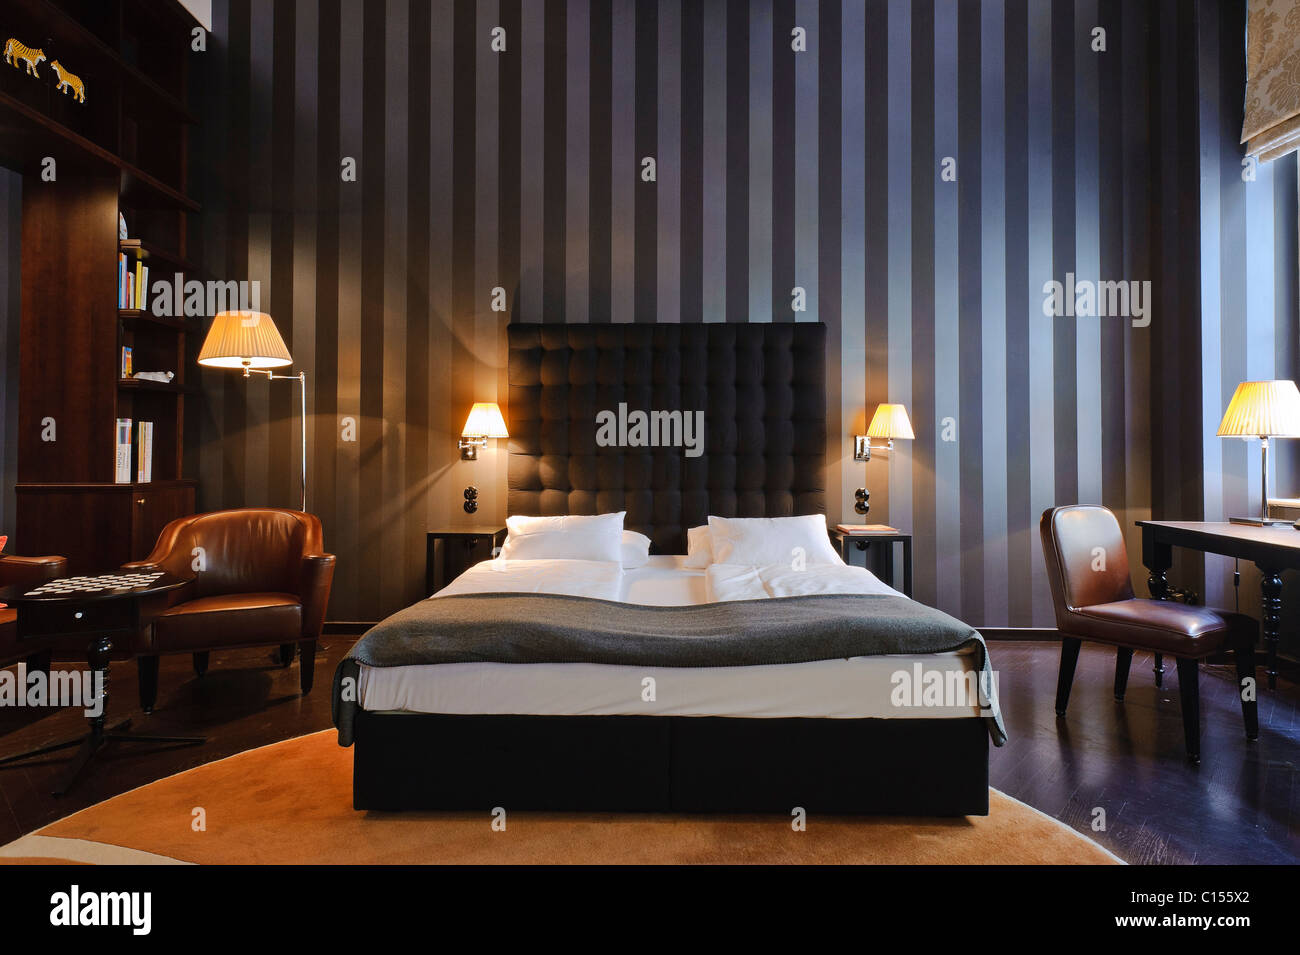 One of the various design rooms at this Vienna Boutique Hotel. Hotel Altstadt - Stock Image